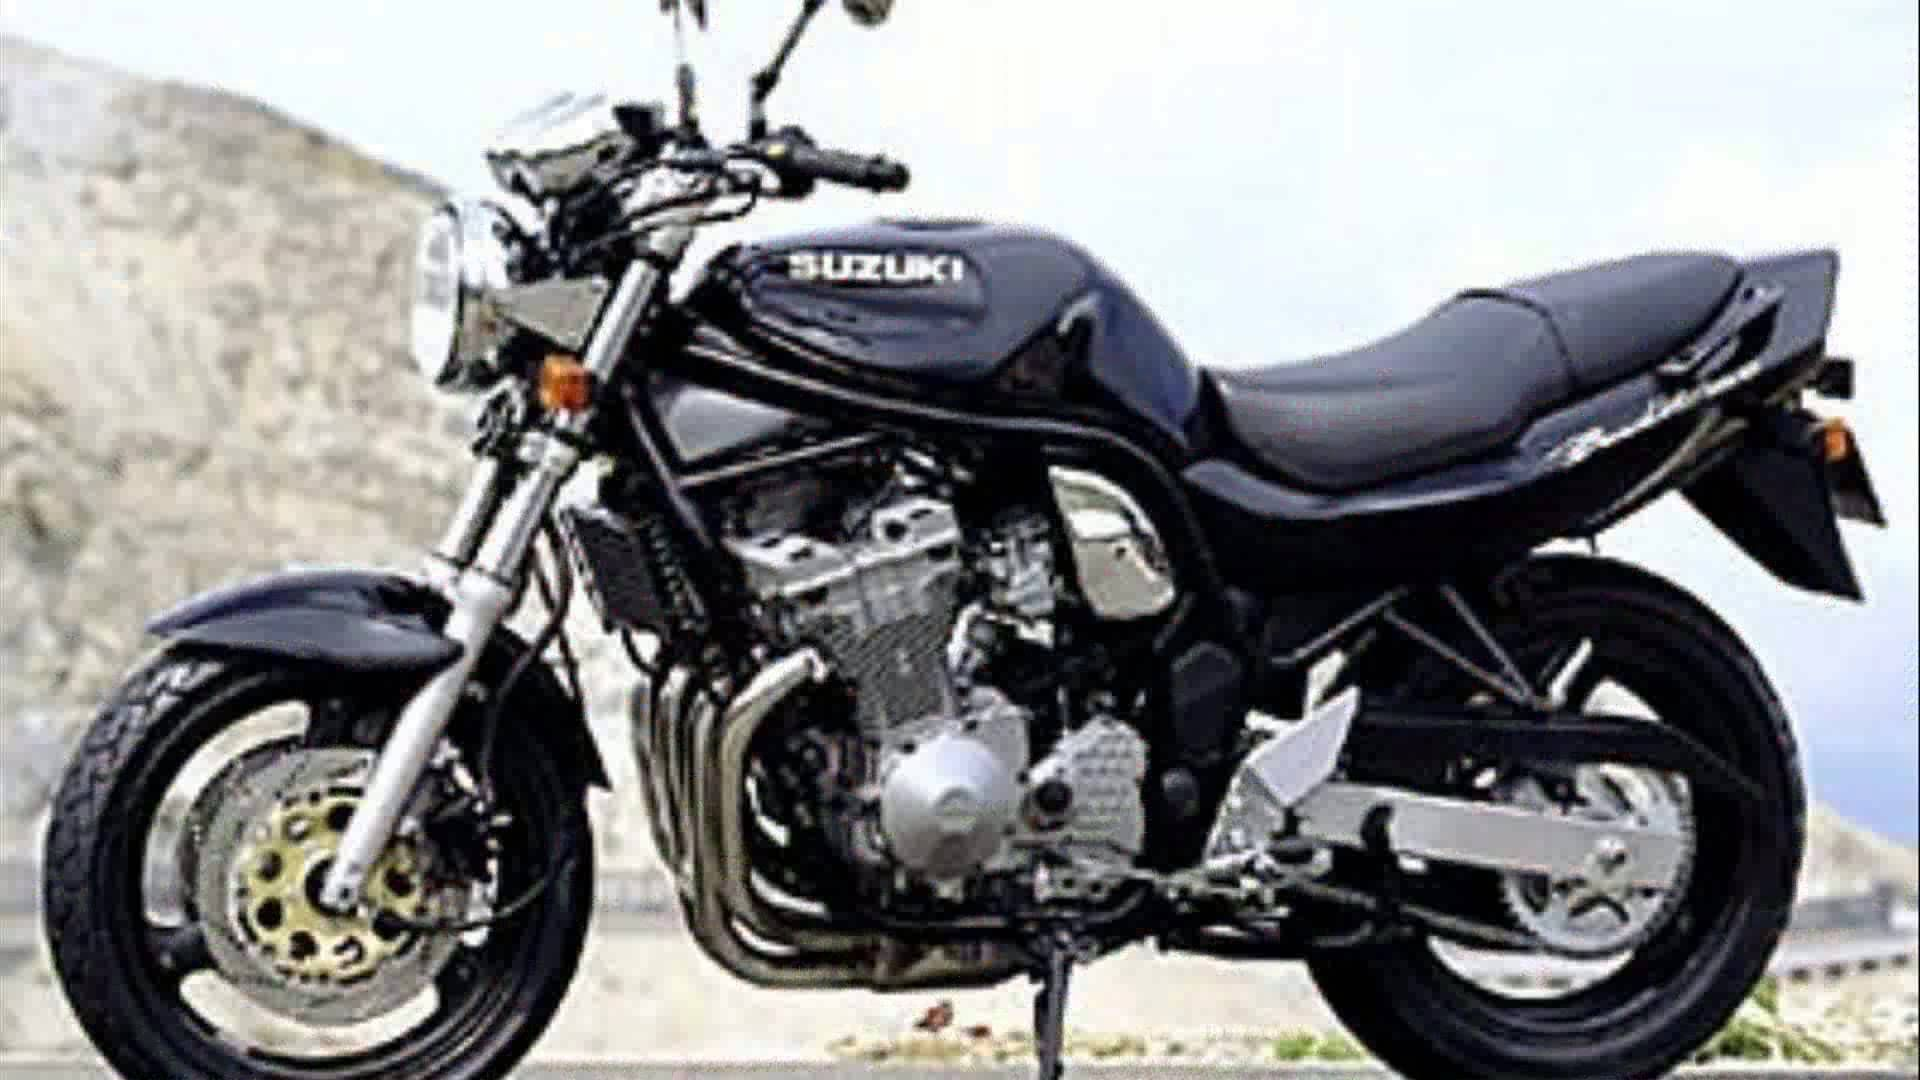 suzuki bandit 1200 wallpaper 2012 ujm pinterest motorbikes and cars. Black Bedroom Furniture Sets. Home Design Ideas